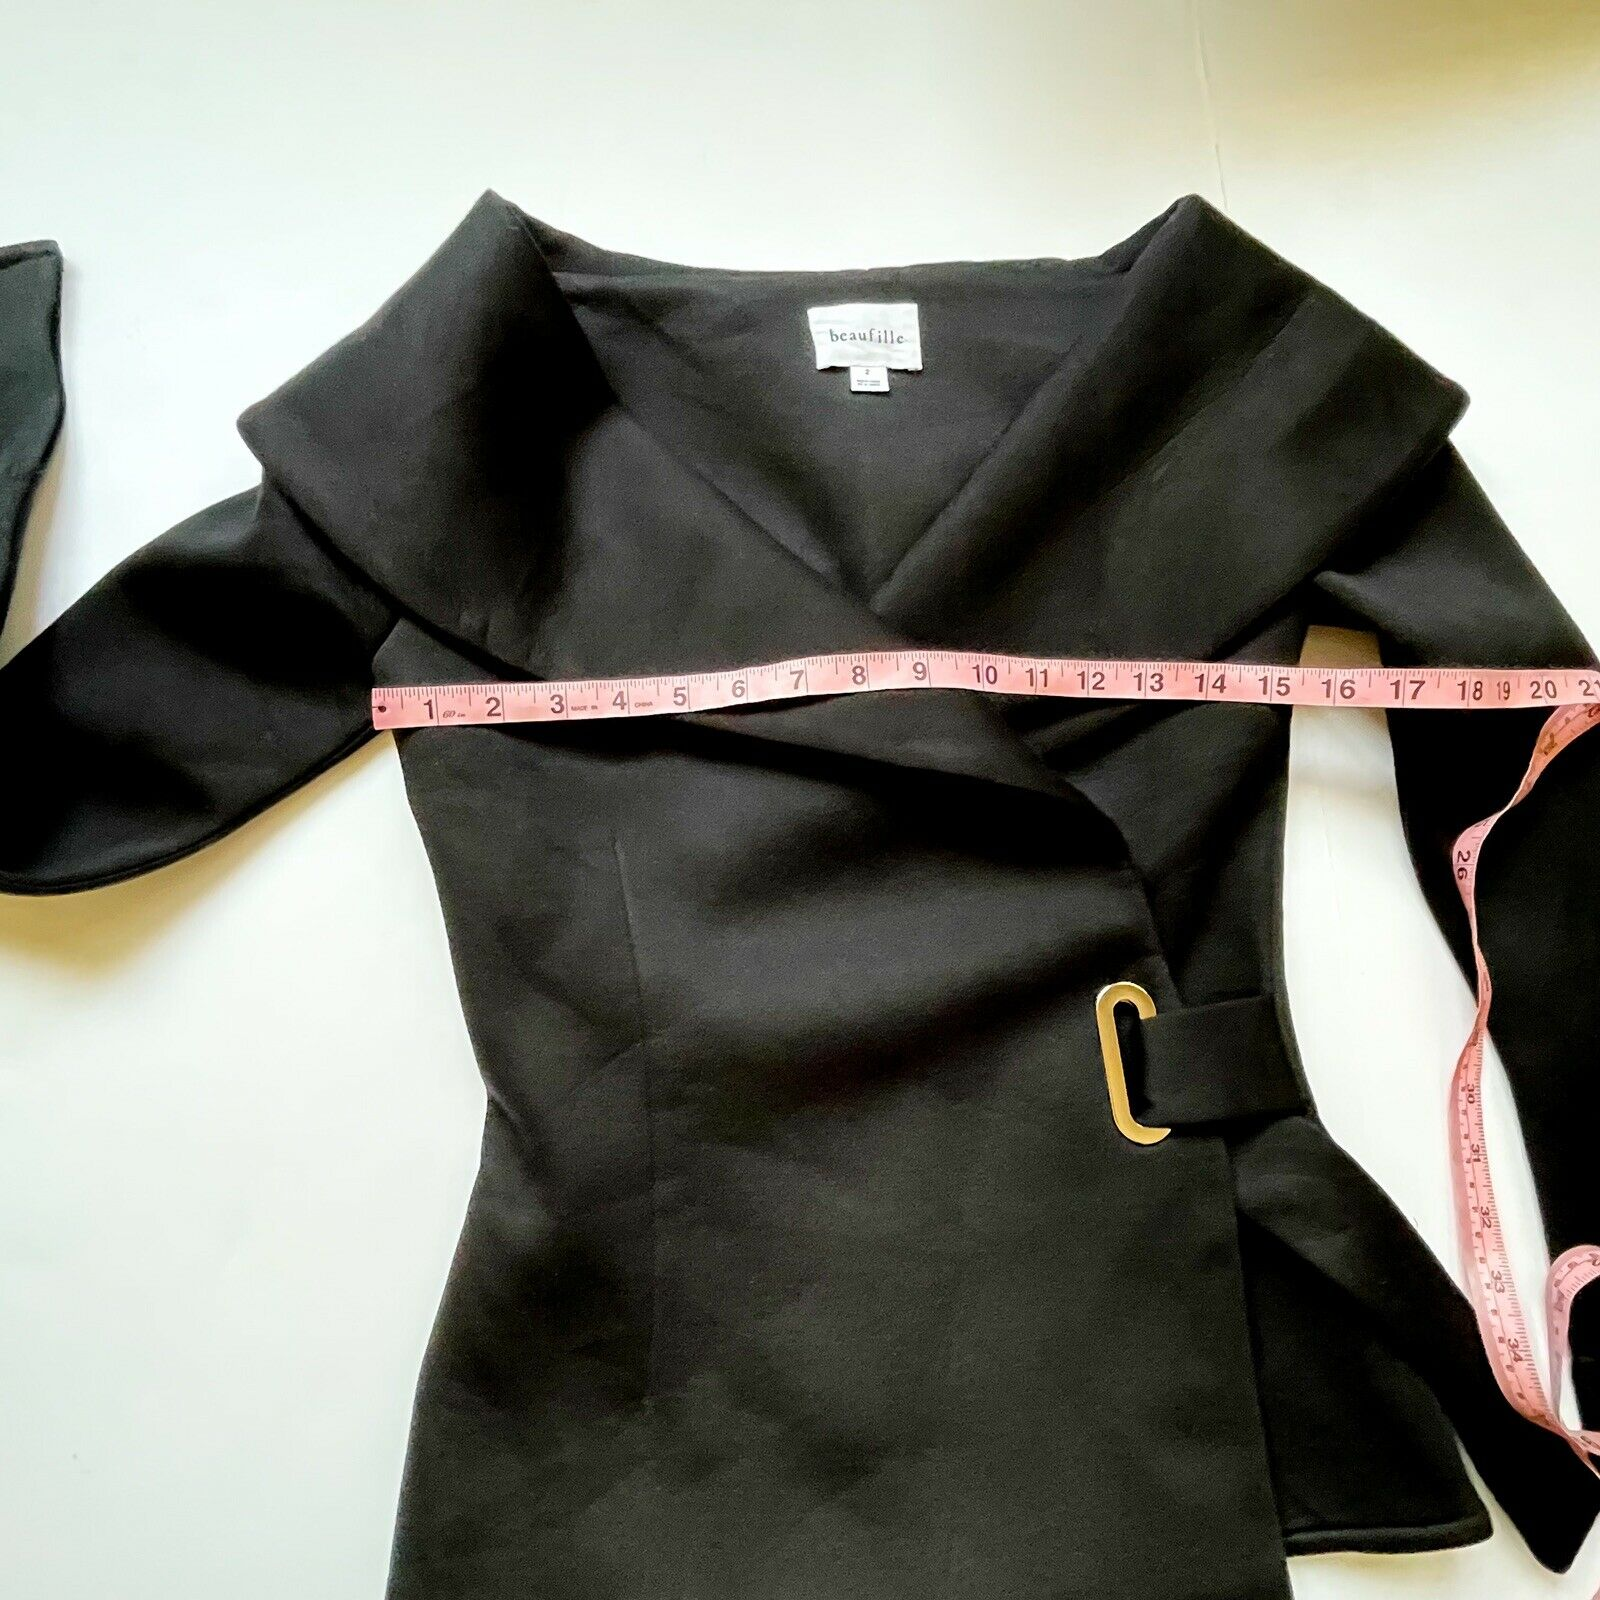 Beaufille Women's Clothing Size 2 Black Large Col… - image 8